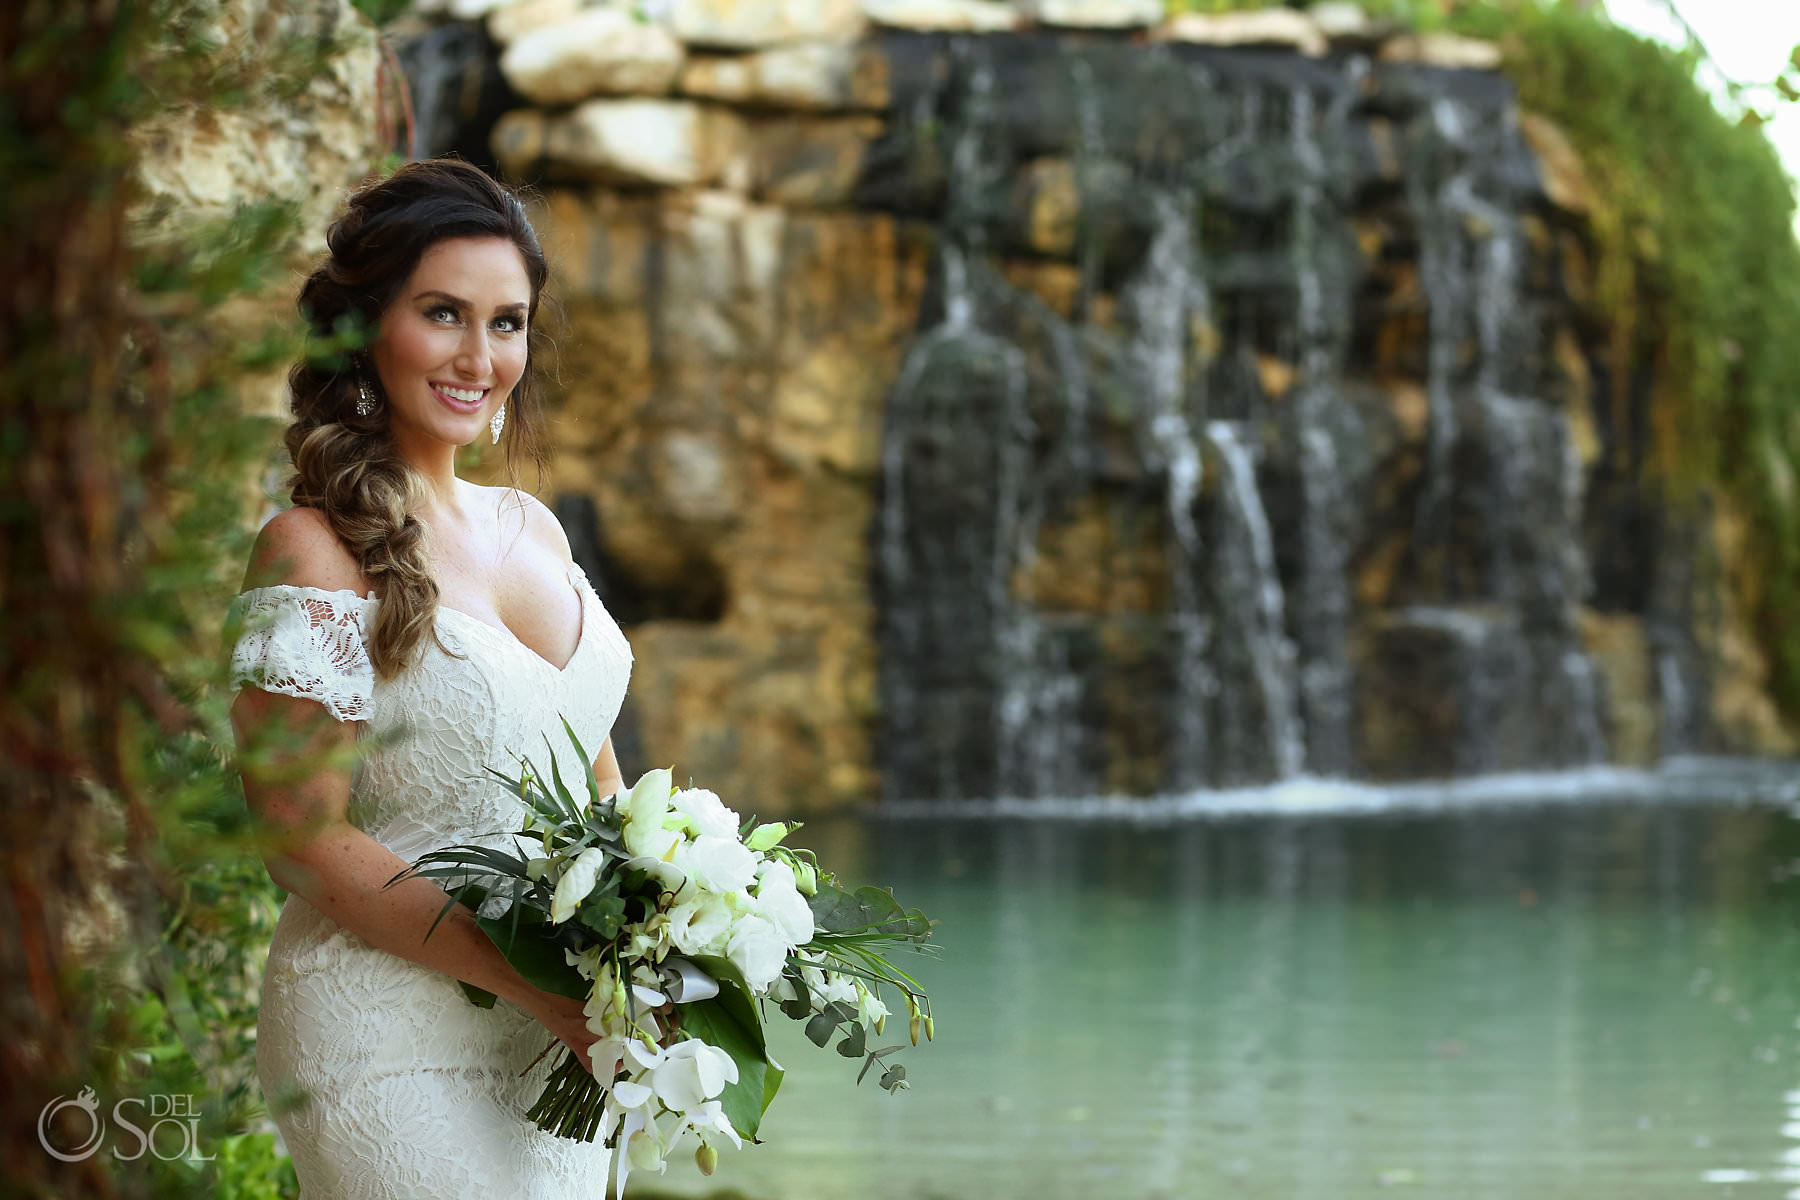 Hotel Xcaret Mexico Wedding coctail location Cuevitas Caleta waterfall